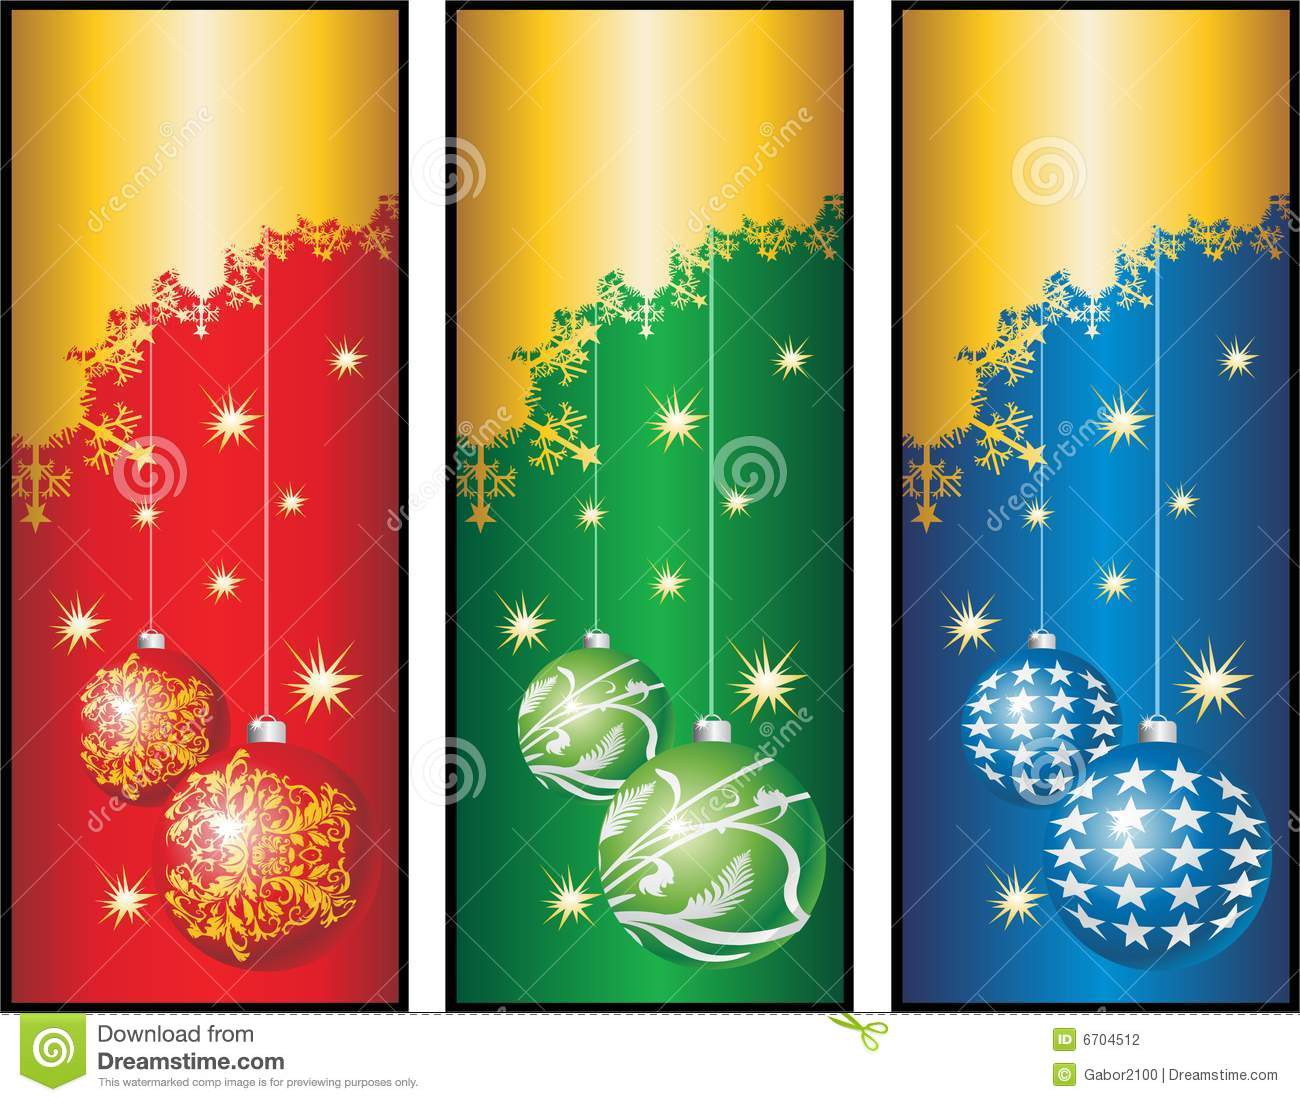 3d Animation Wallpaper Download Christmas Banners Cdr Stock Photography Image 6704512